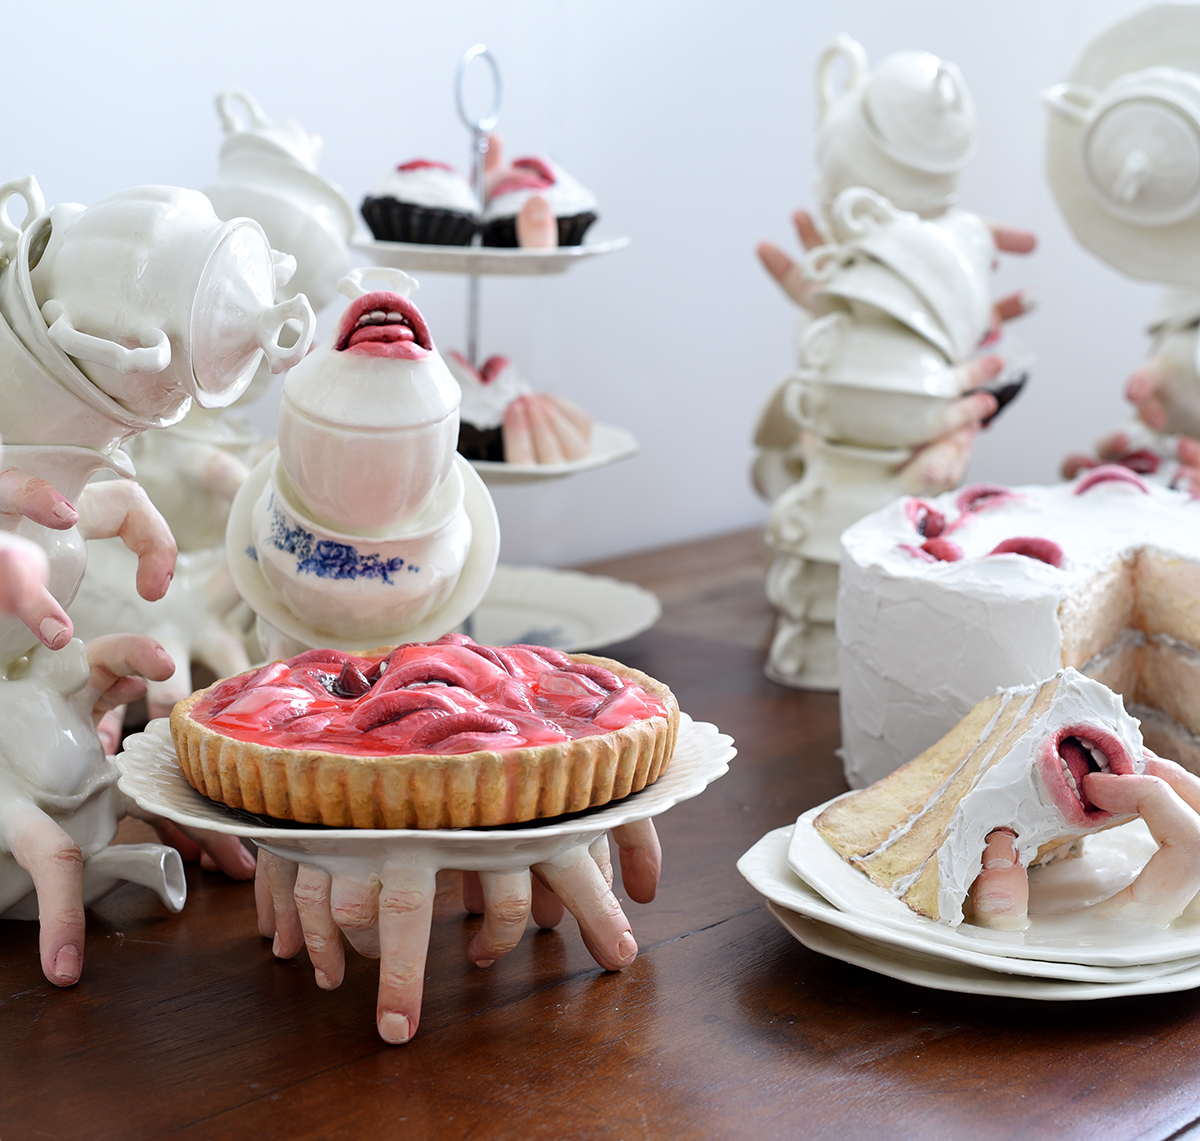 Insatiable Mouths and Fingers Rouse a Delicate Tea Set by Artist Ronit Baranga